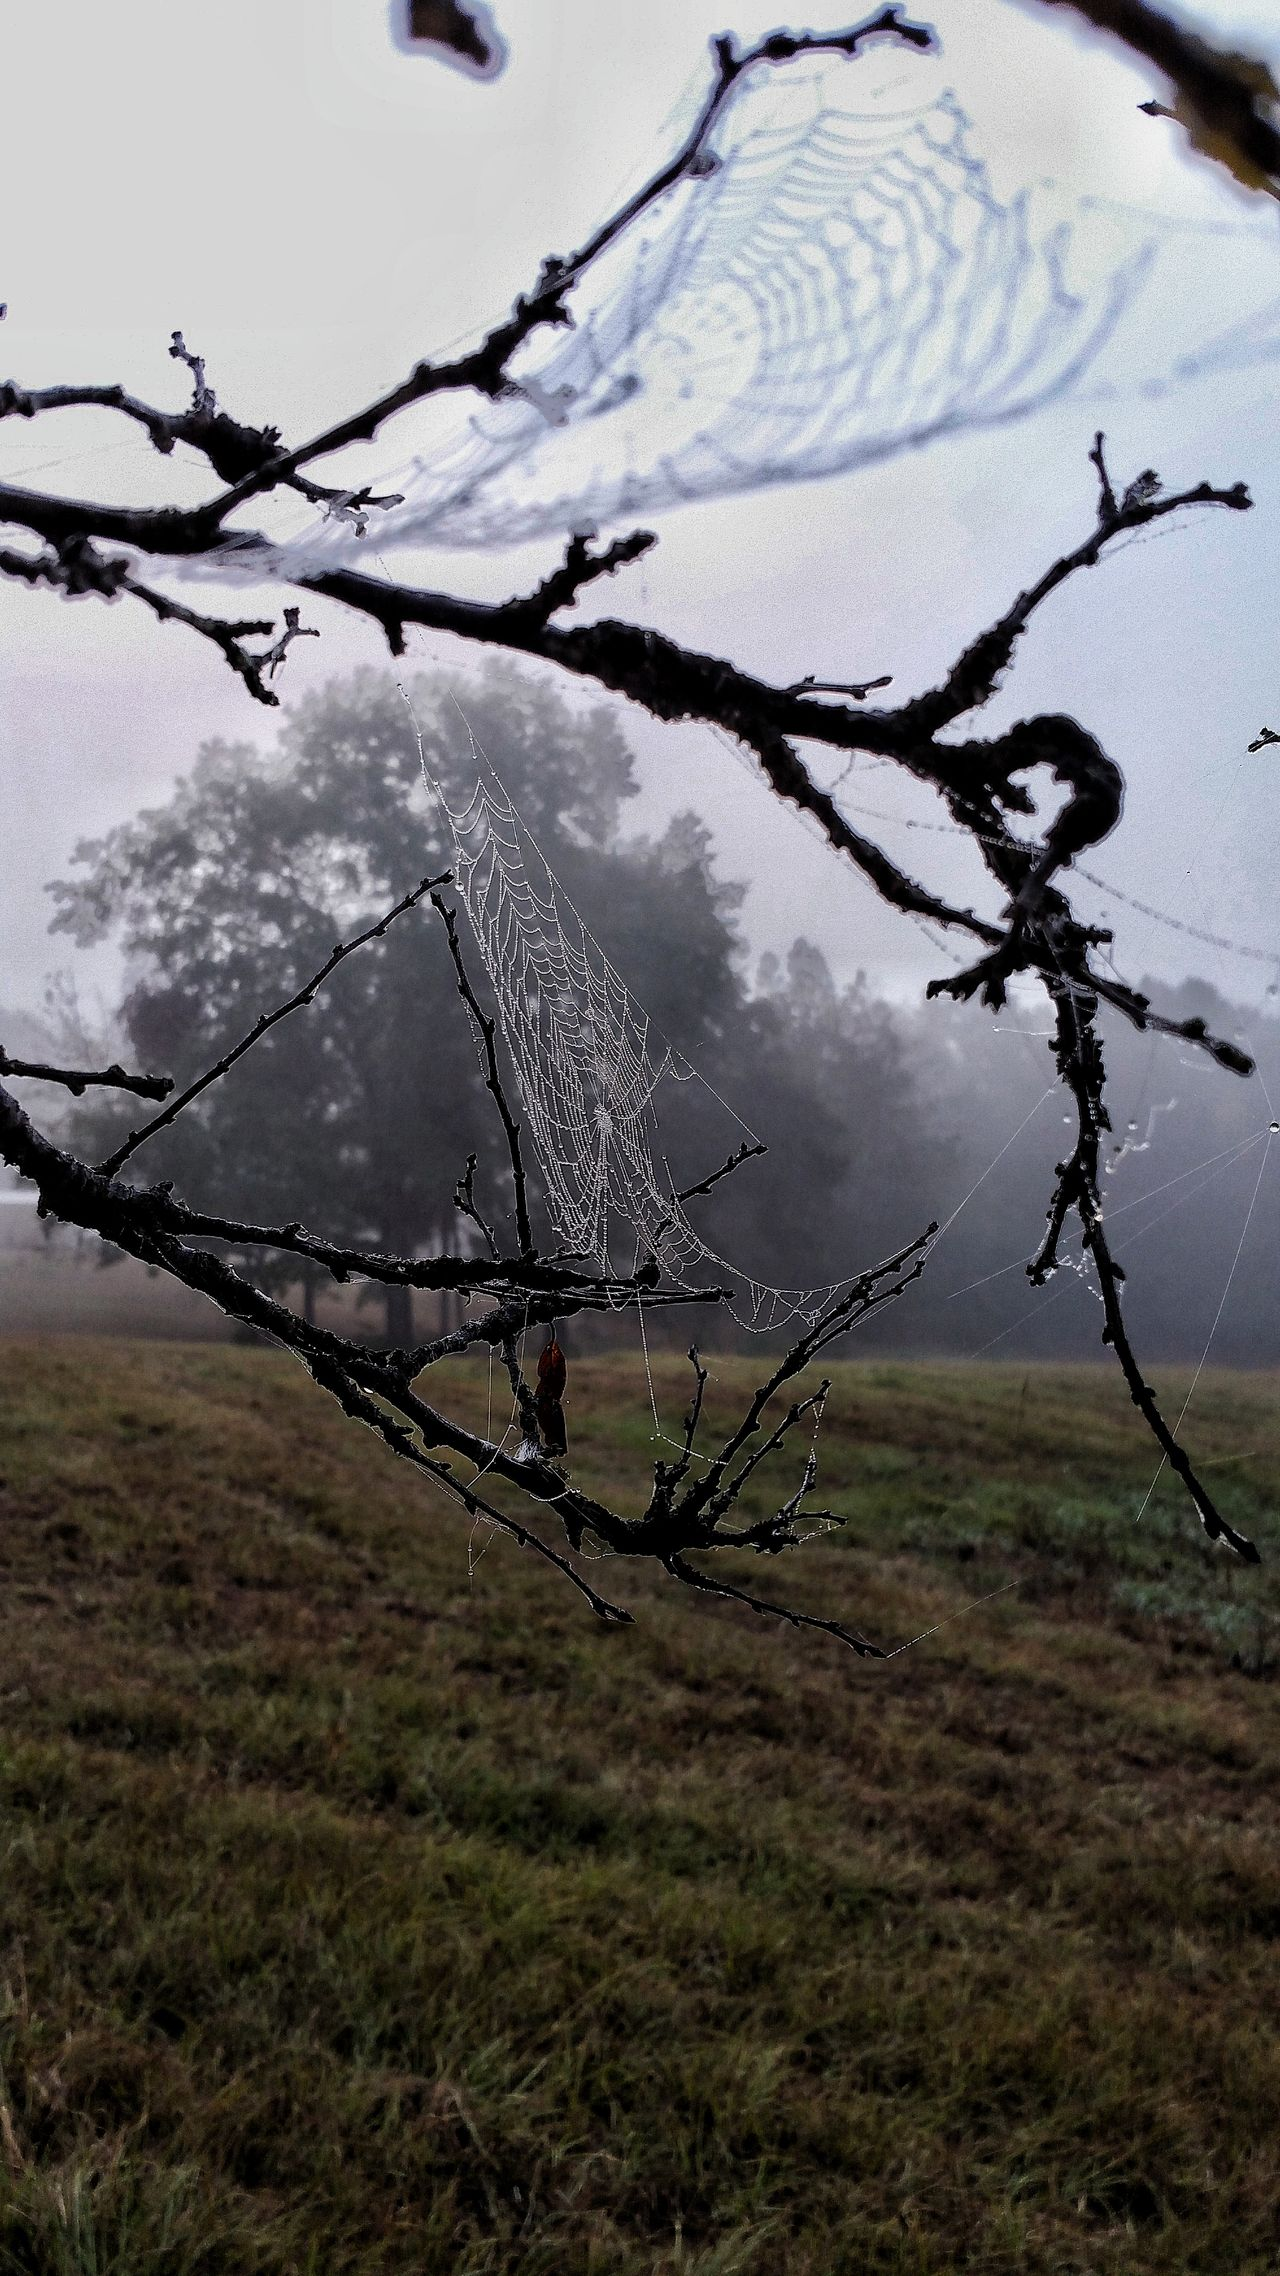 Foggy Foggy Weather Foggy Morning Misty Morning Tranquil Scene Beauty In Nature Tranquility Spiderweb Web Bare Tree Fall Early Morning Spider Web, Dew, Morning, Dew On Spider Webs Lonely Scene